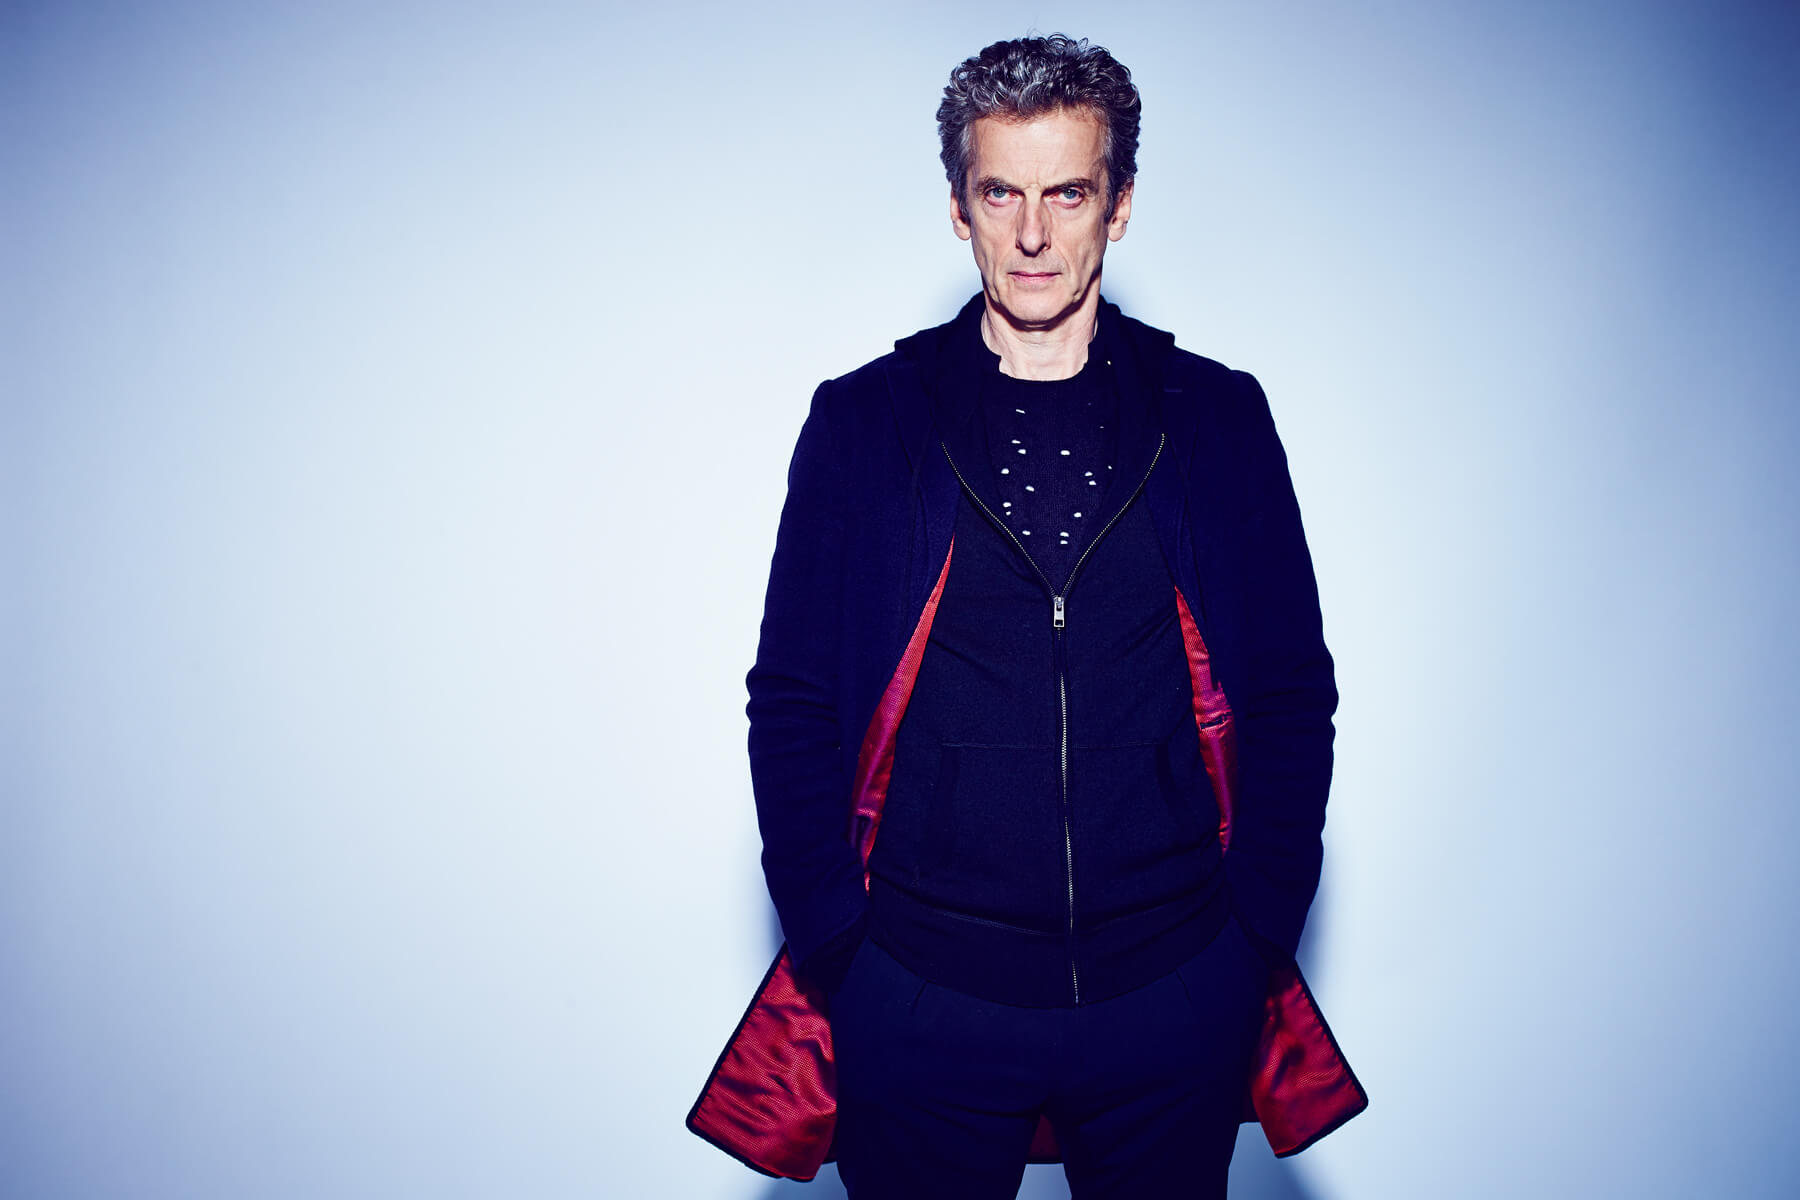 doctor who series 9 - photo #28